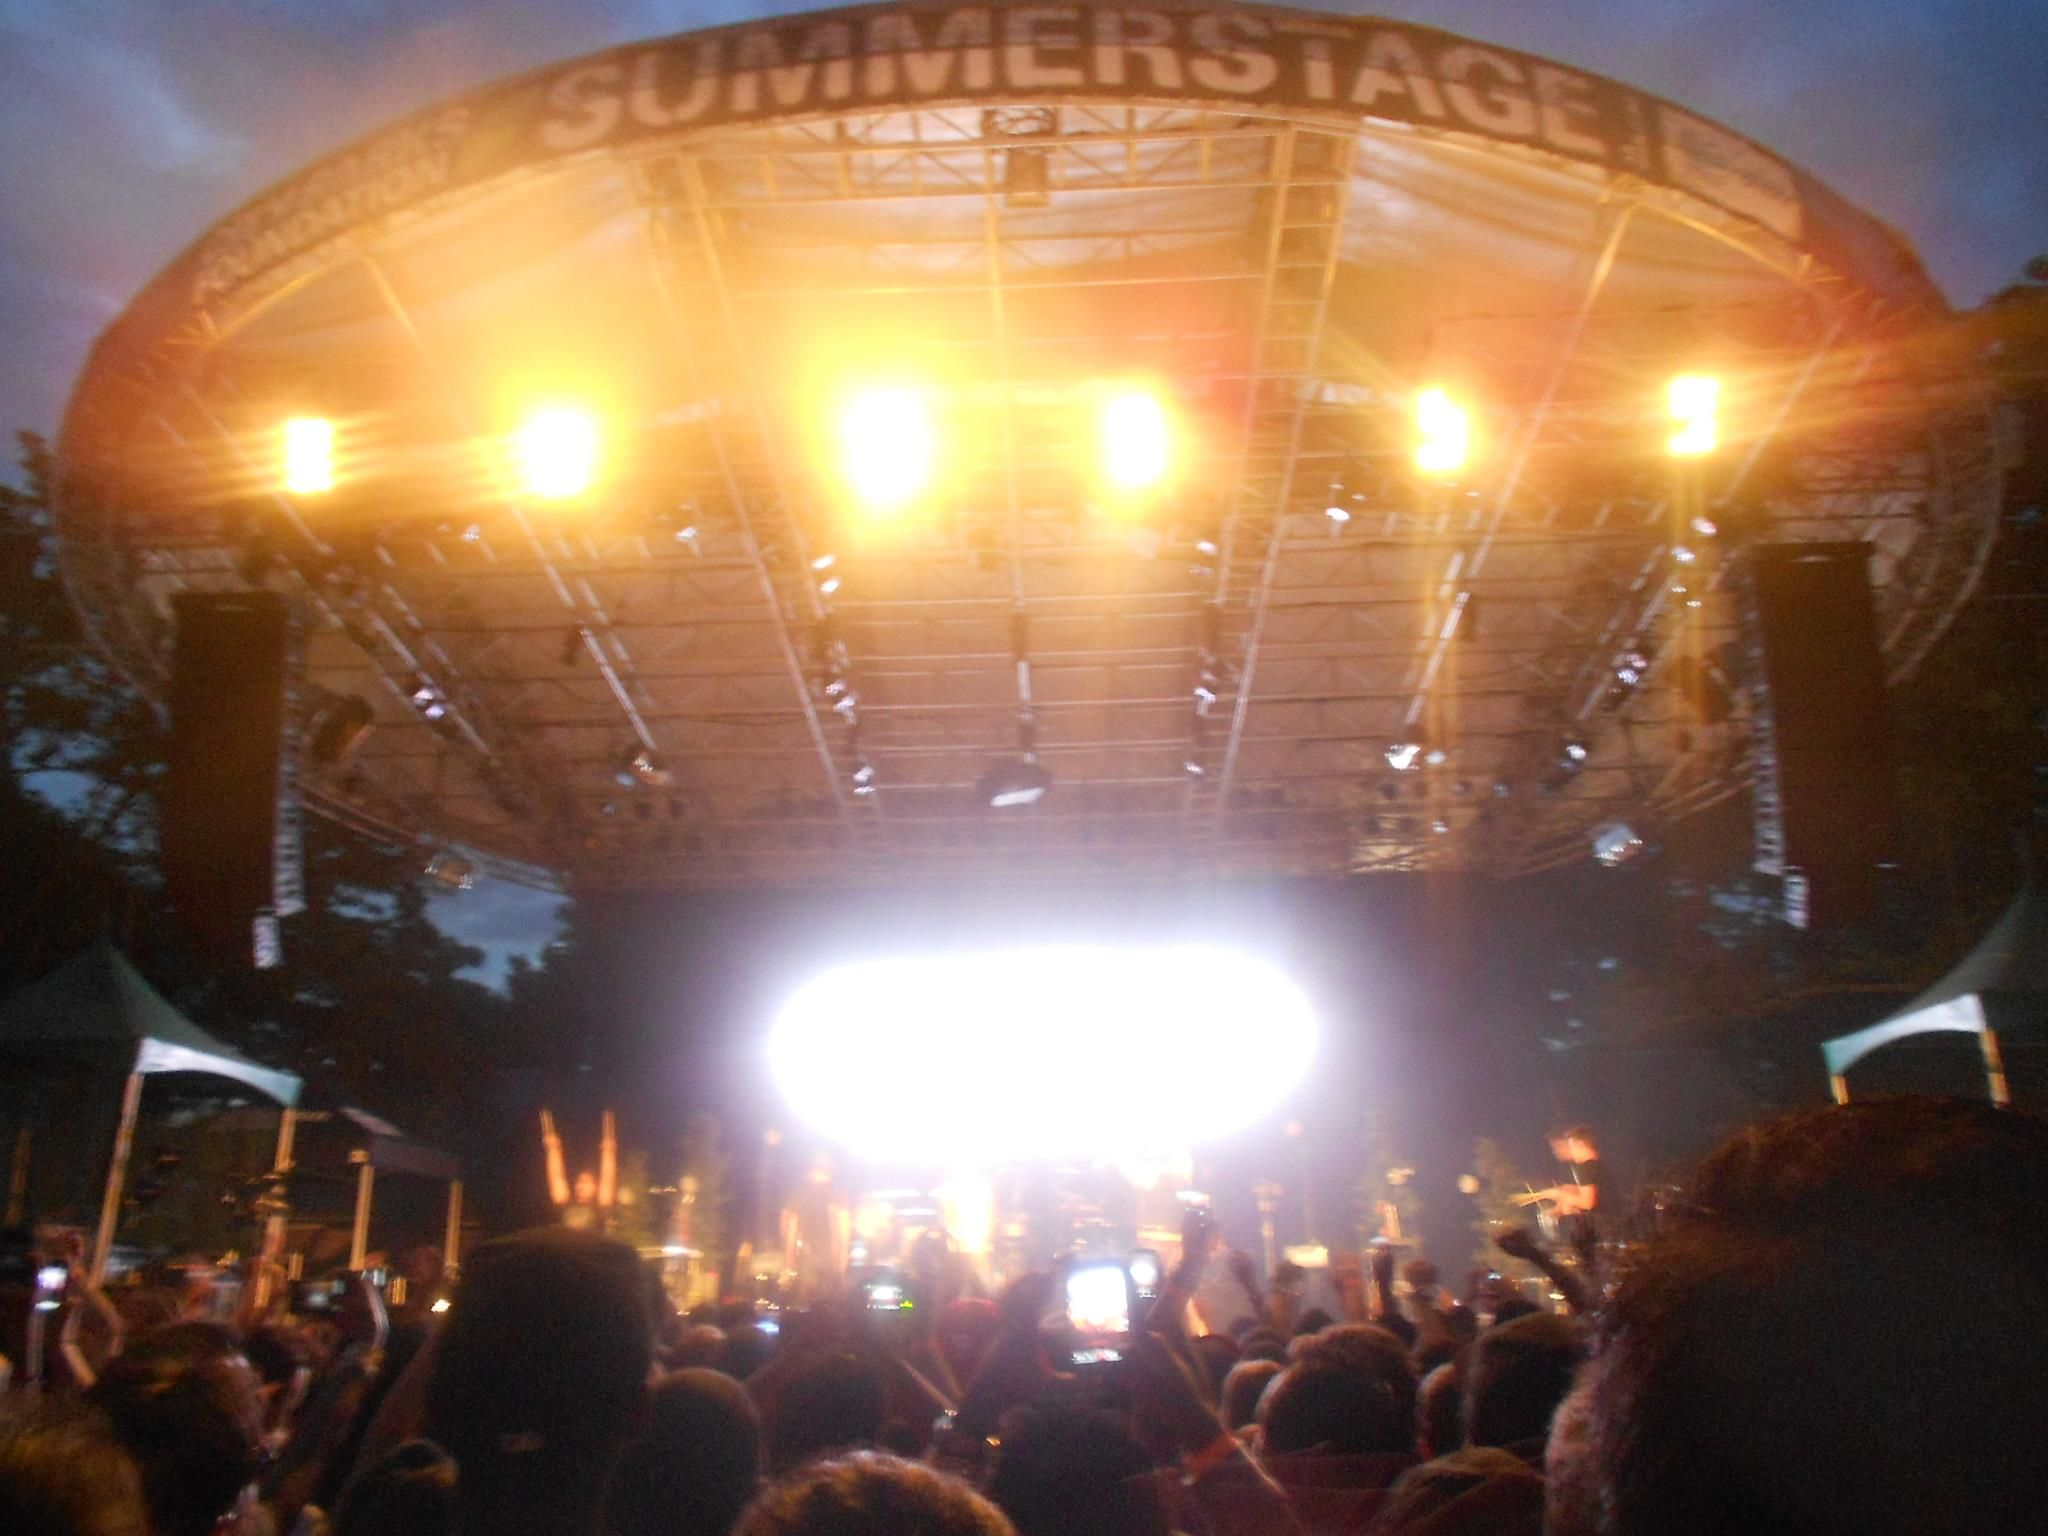 #childishgambino Concert at central park 2 weeks ago :)